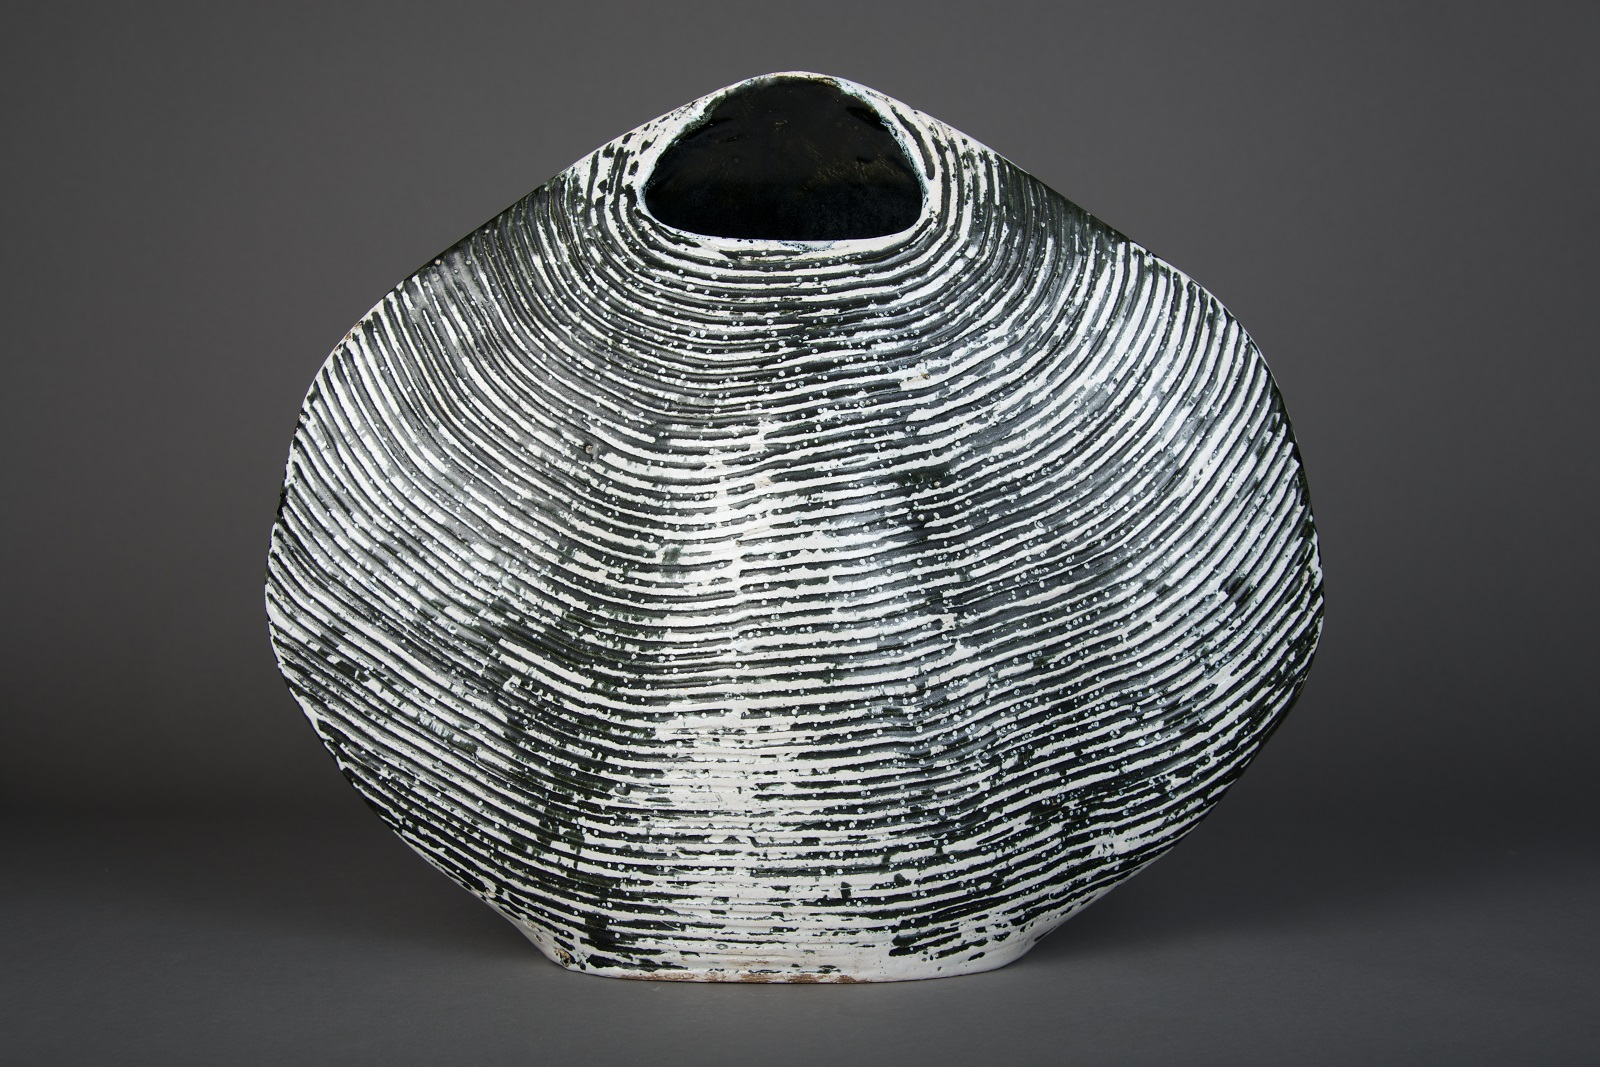 Large cockle shell shape vase with small opening at the top modelled in creamy grey. The ridges in the clap look black.